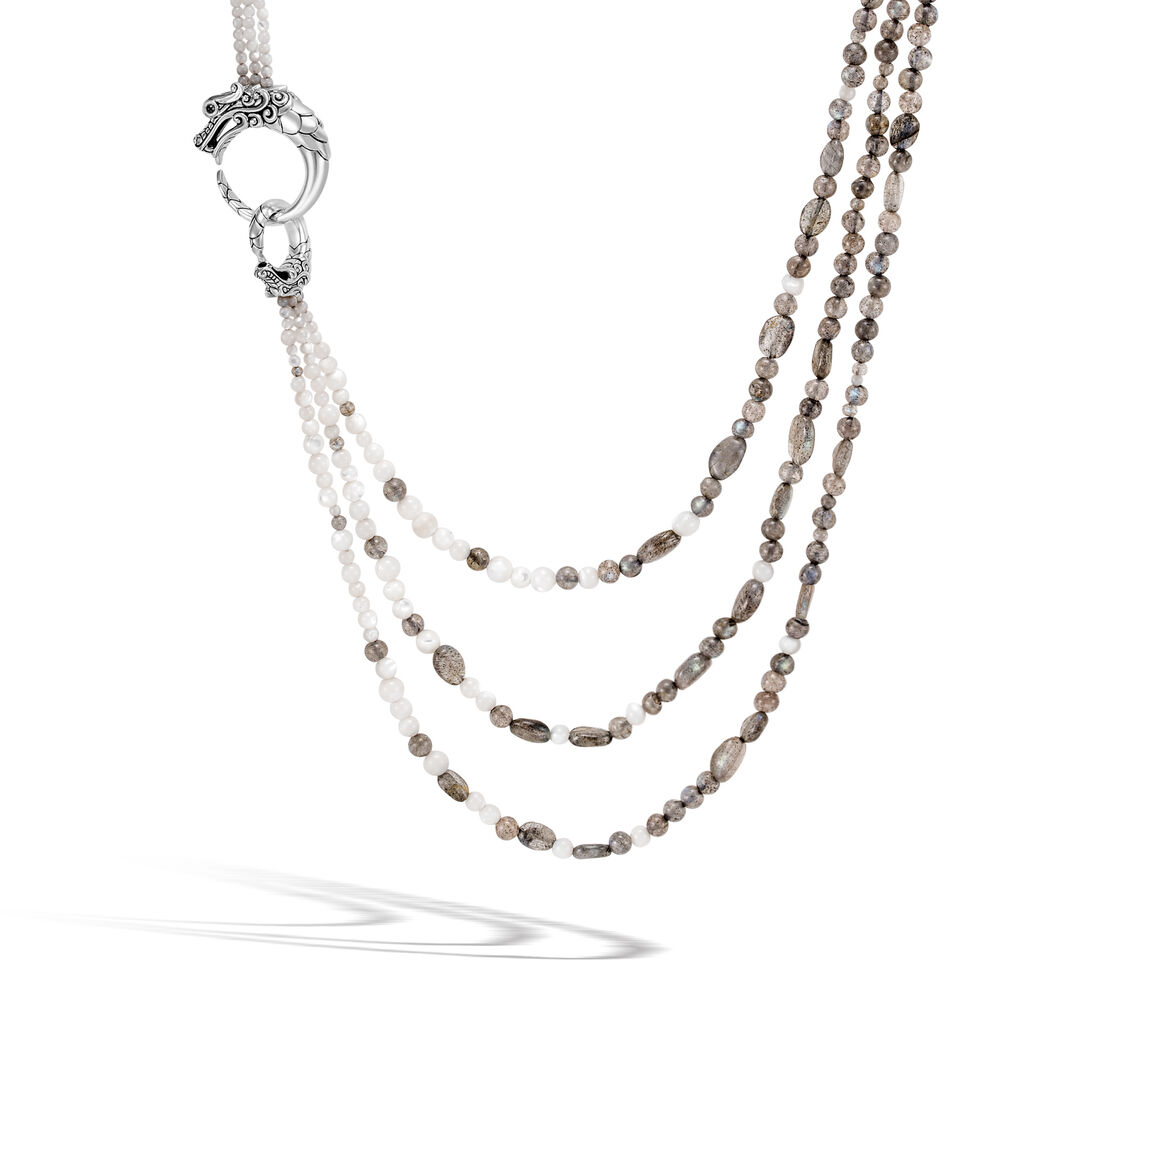 Legends Naga Multi Row Necklace in Silver with Gemstone